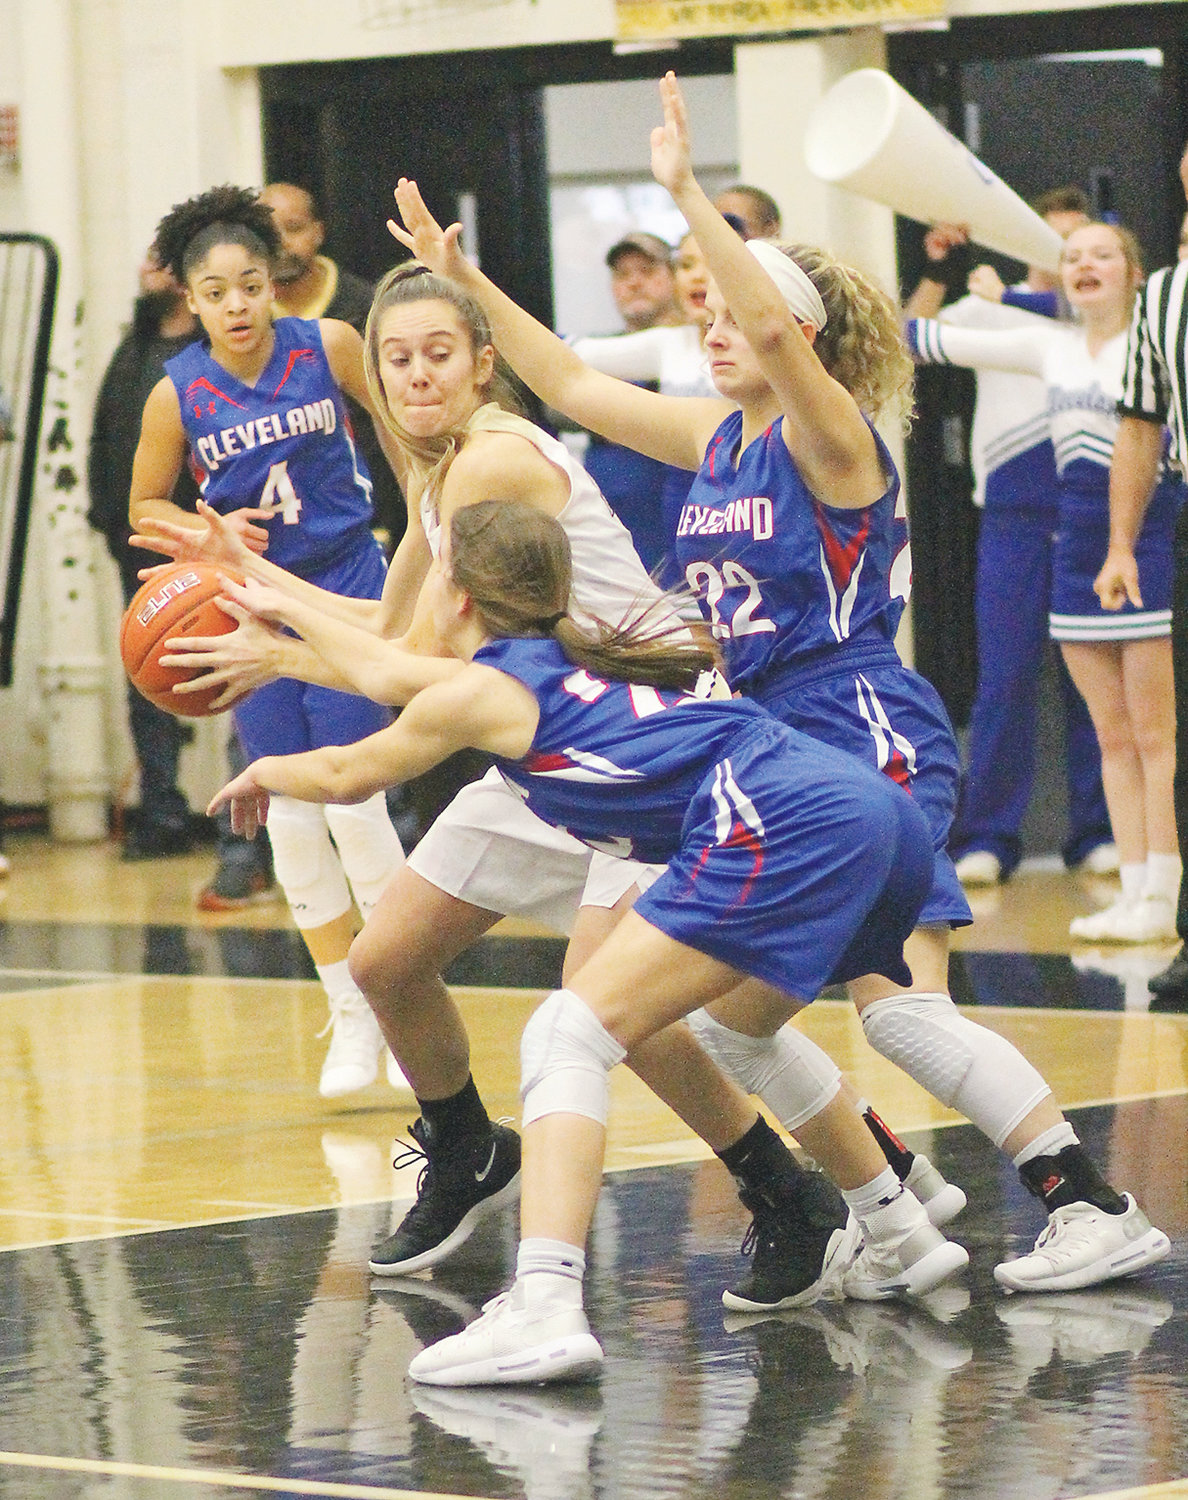 BRADLEY CENTRAL junior Anna Walker (centeR) is triple-teamed by Cleveland's Kara Williams (front), Joy Douglass (22) and Mariyah Person (4) but is able to get a pass off to a teammate during Monday evening's action at Jim Smiddy Arena.